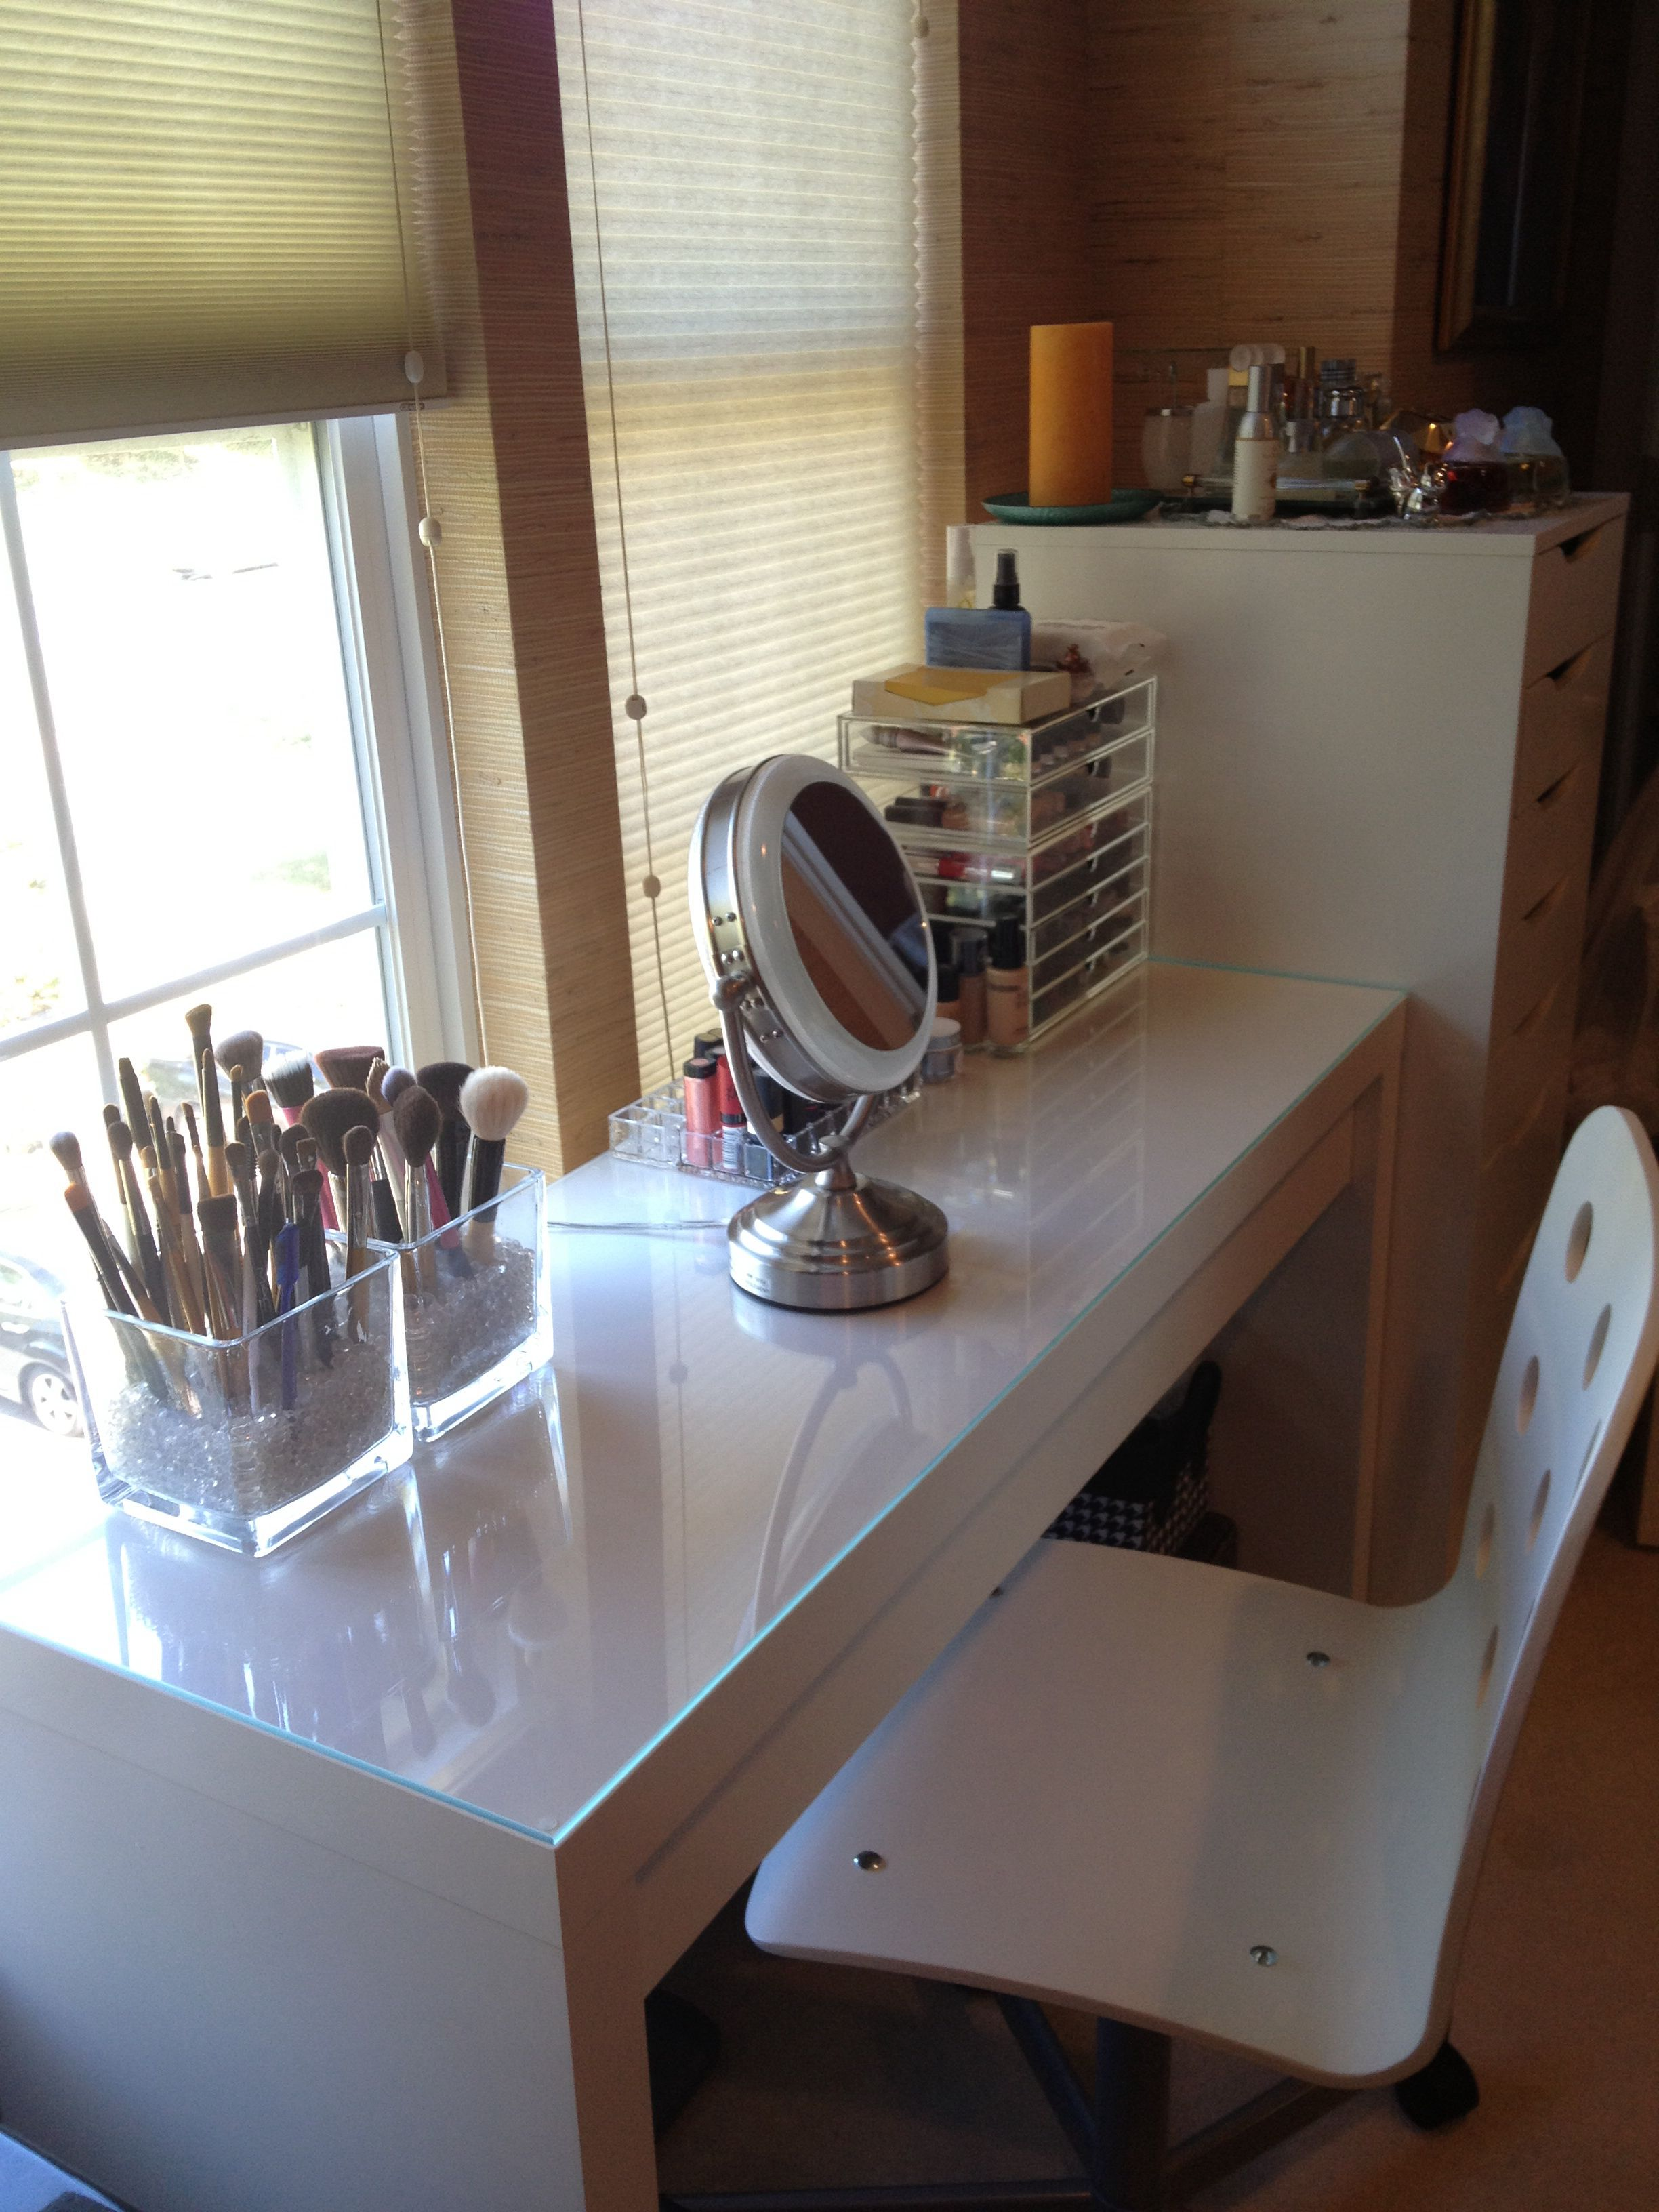 Ikea Malm Dressing Table Used As Makeup Vanity Chair Is Also